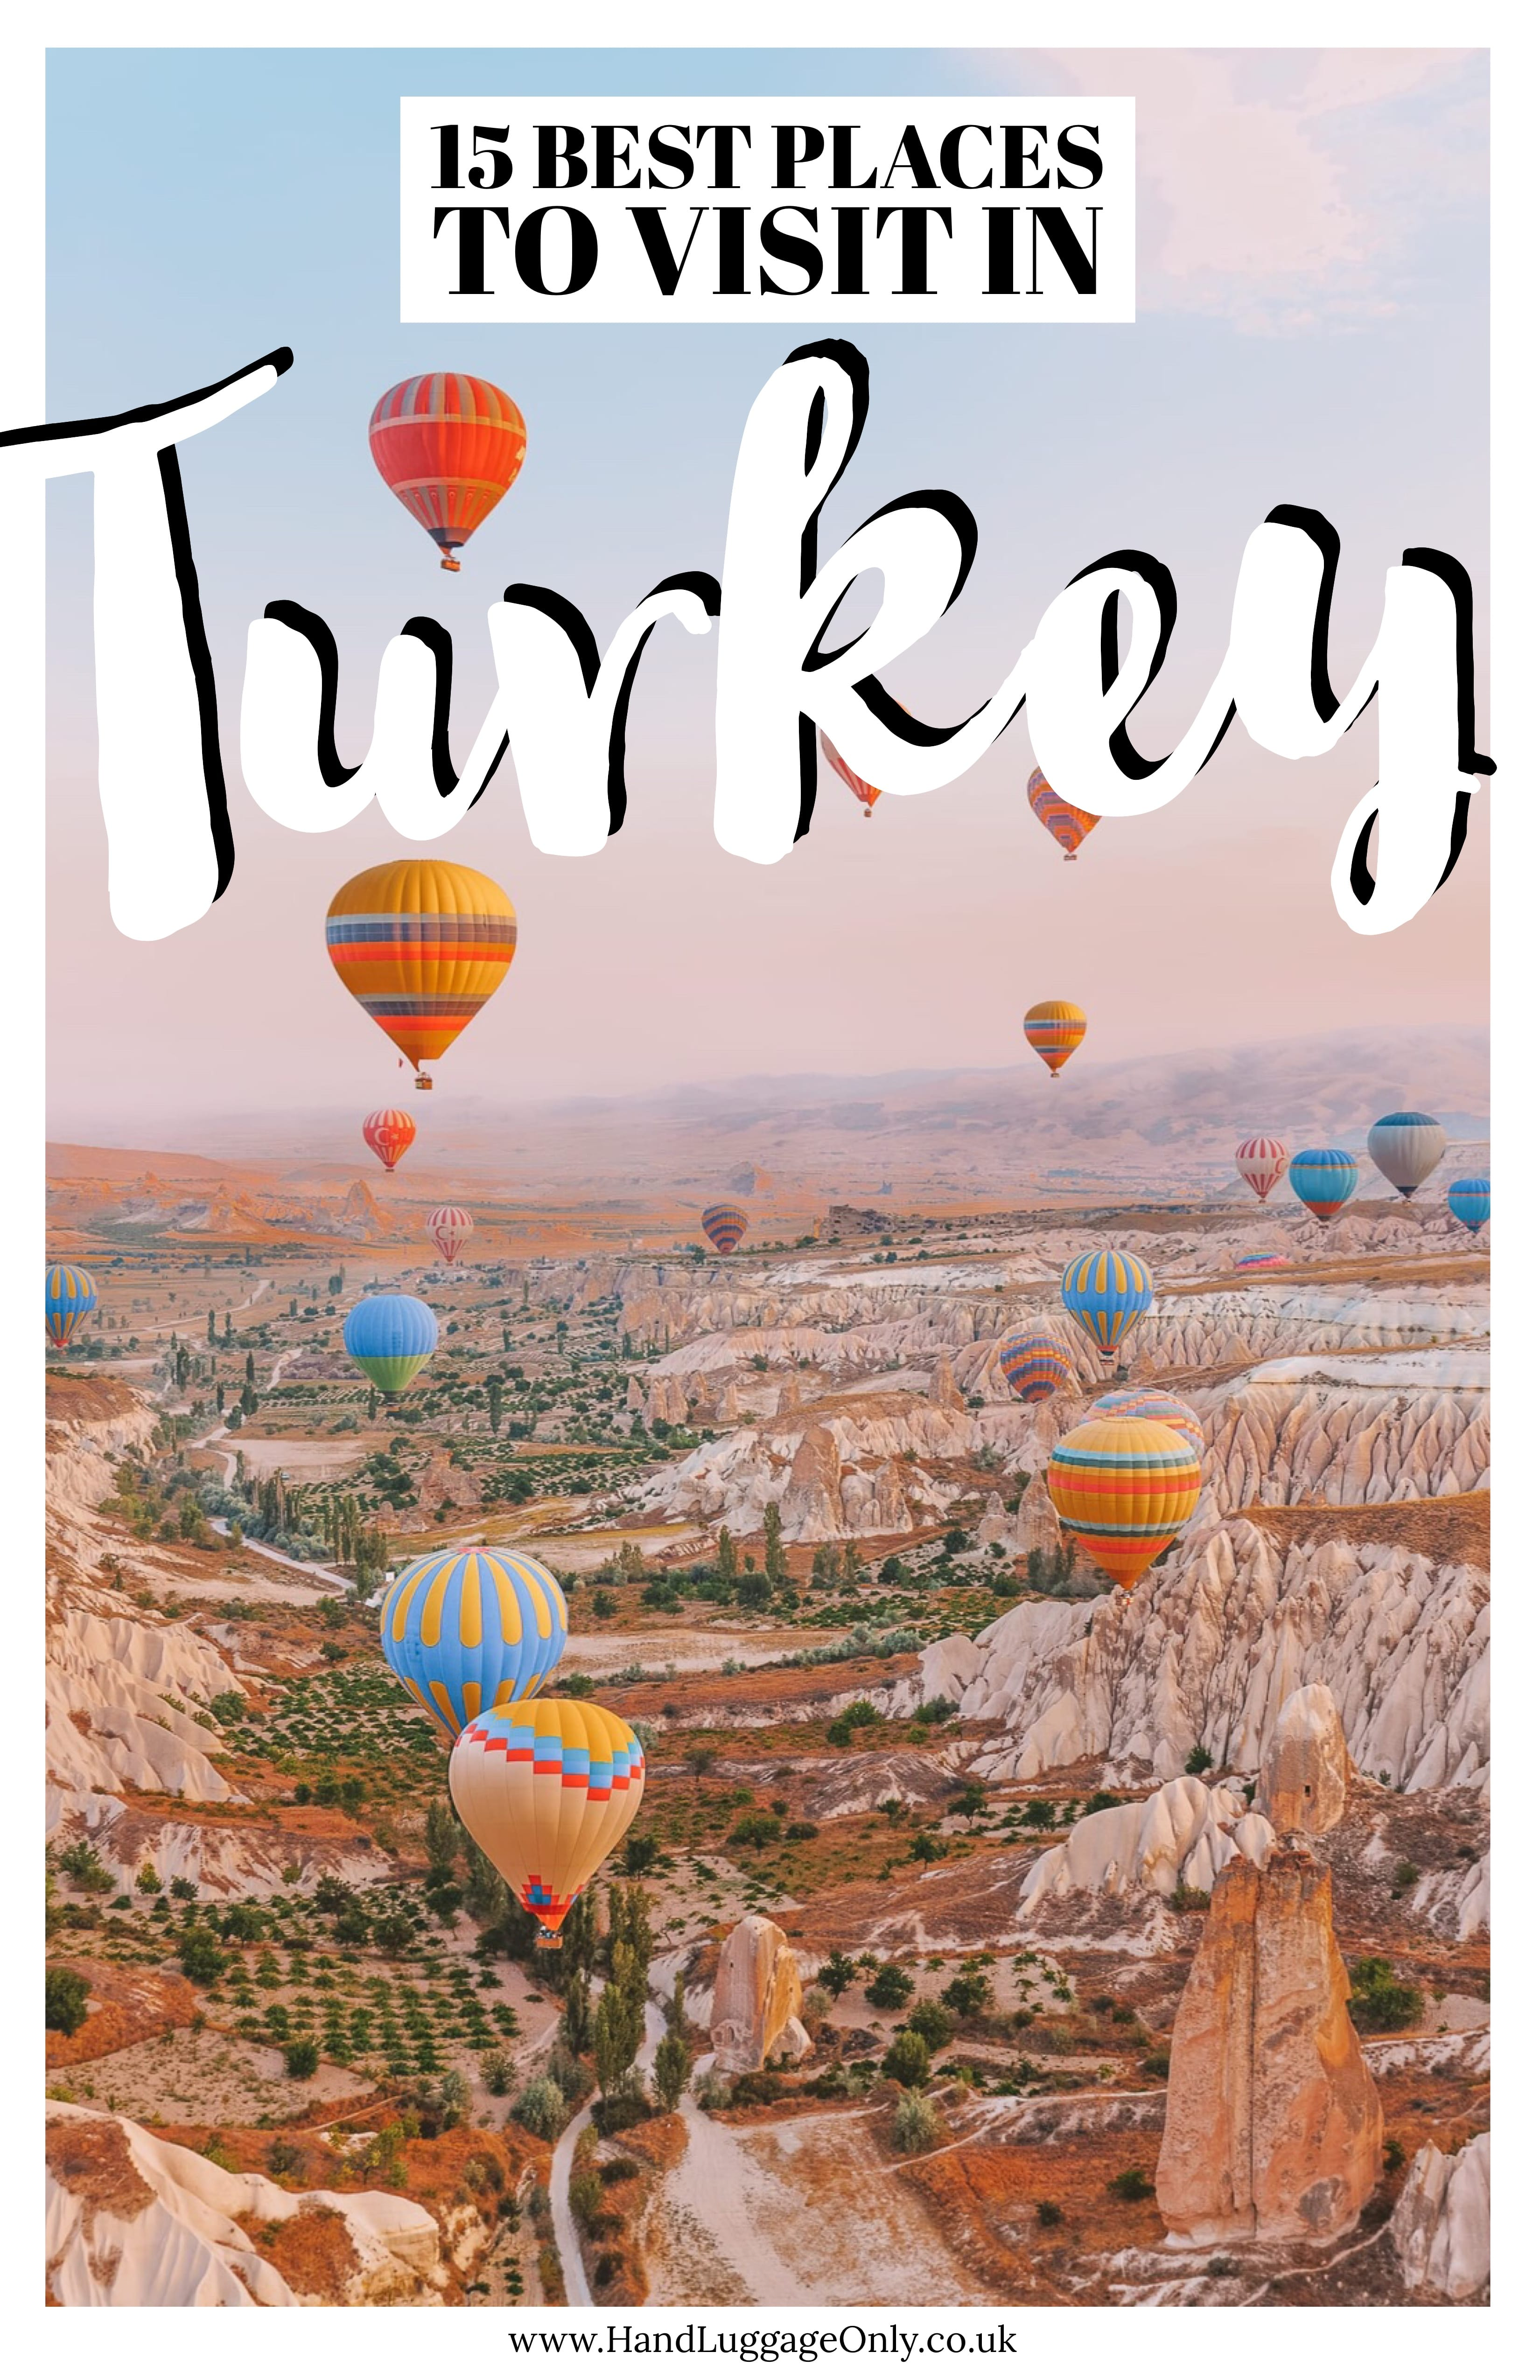 15 Best Places In Turkey To Visit (1)